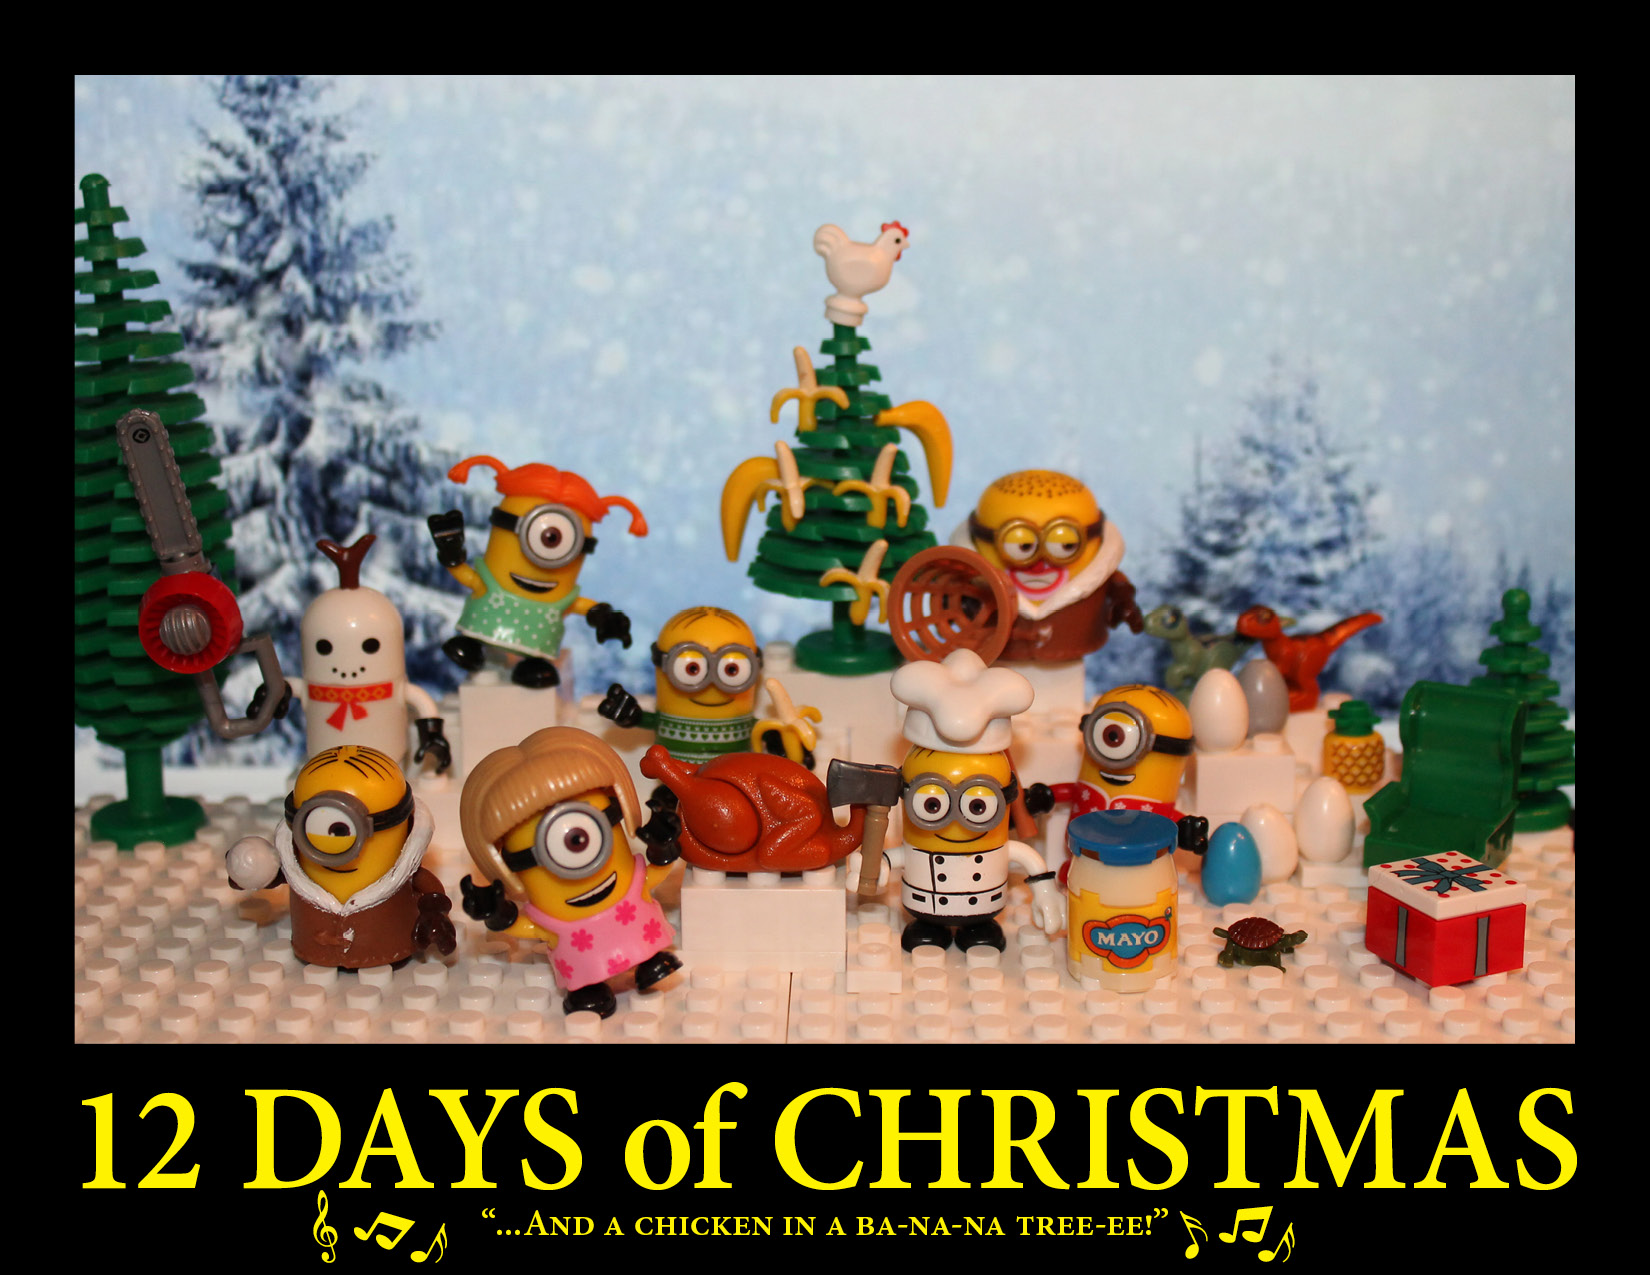 12 Days of Minions